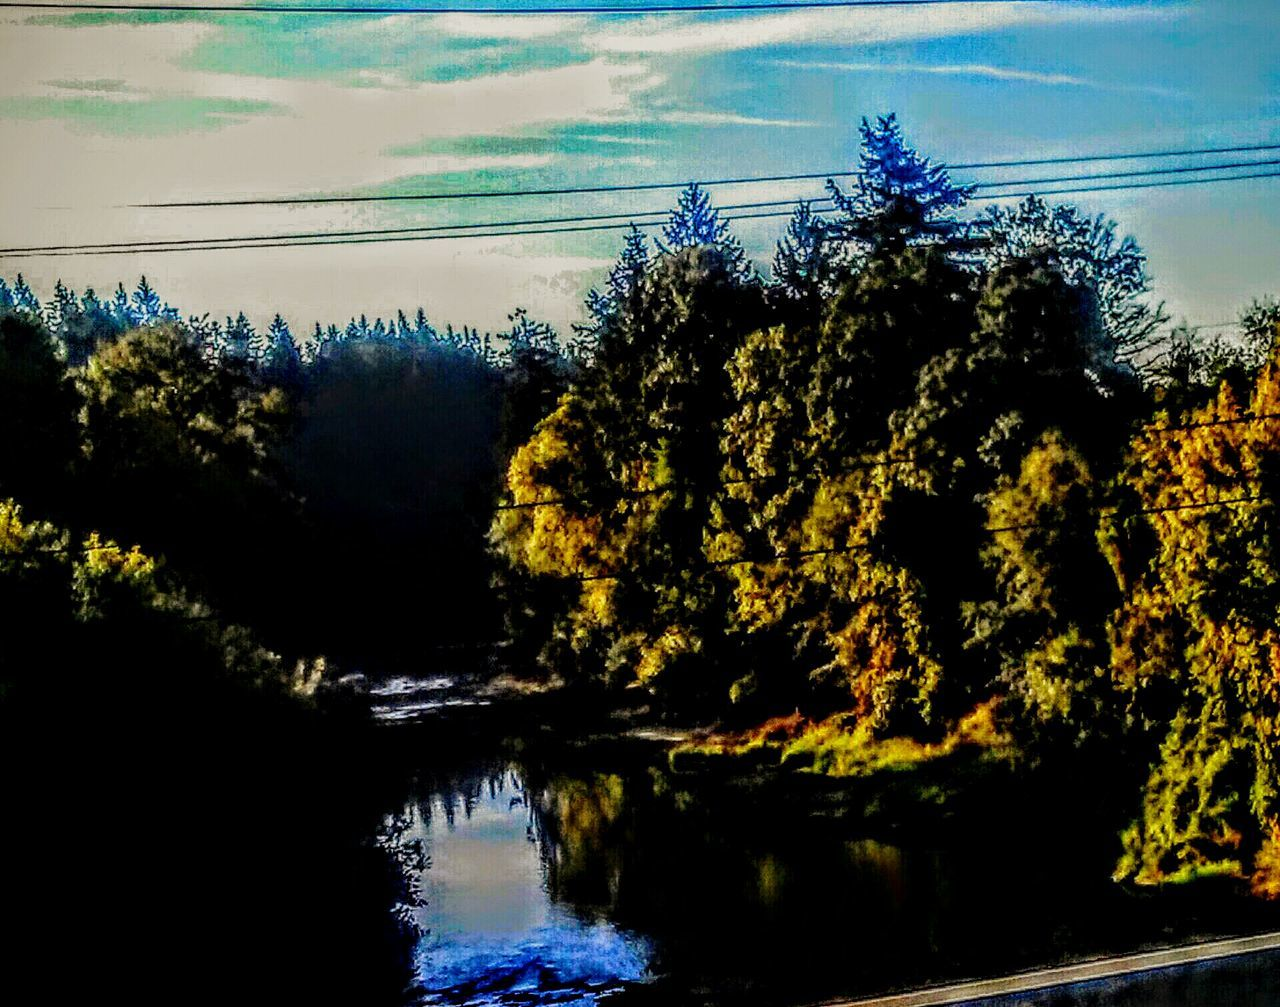 Riverside Refelections Water Reflections Water_collection Yamhill County Yamhill River Over The Bridge Stare Away  Taking Photos Enjoying Life Show Case August The Week Of Eyeem Nature_collection August Morning Colour Of Life Pivotal Ideas Color Photography Color Palette Birds Eye View Check This Out River View Life Colour Life Is A Journey Blue Sky Summer Views